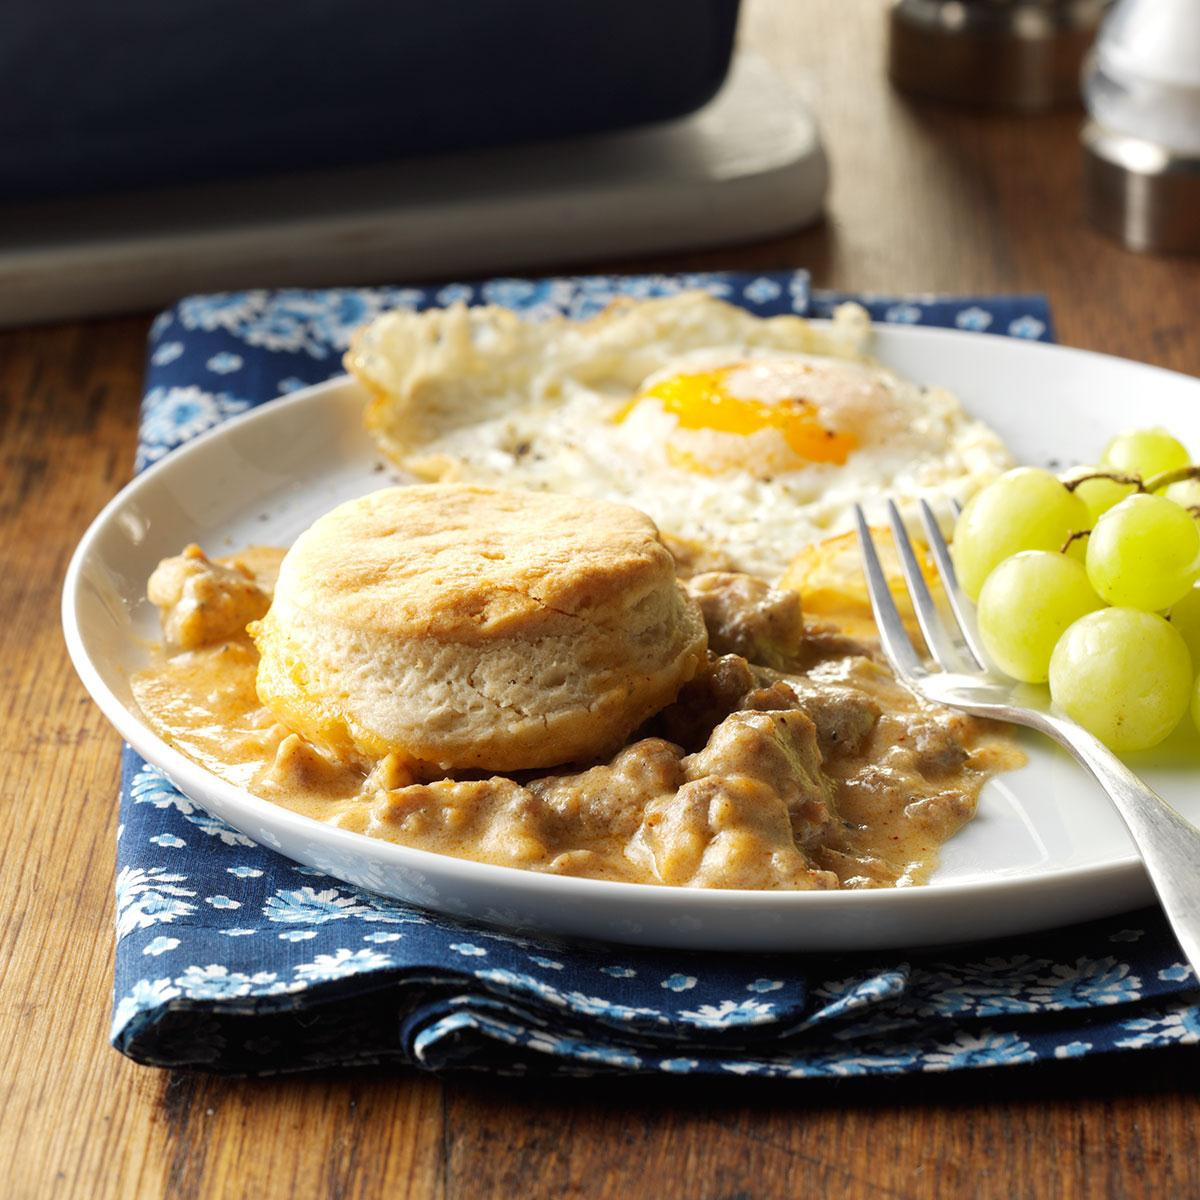 Fullsize Of Biscuits And Gravy Bake